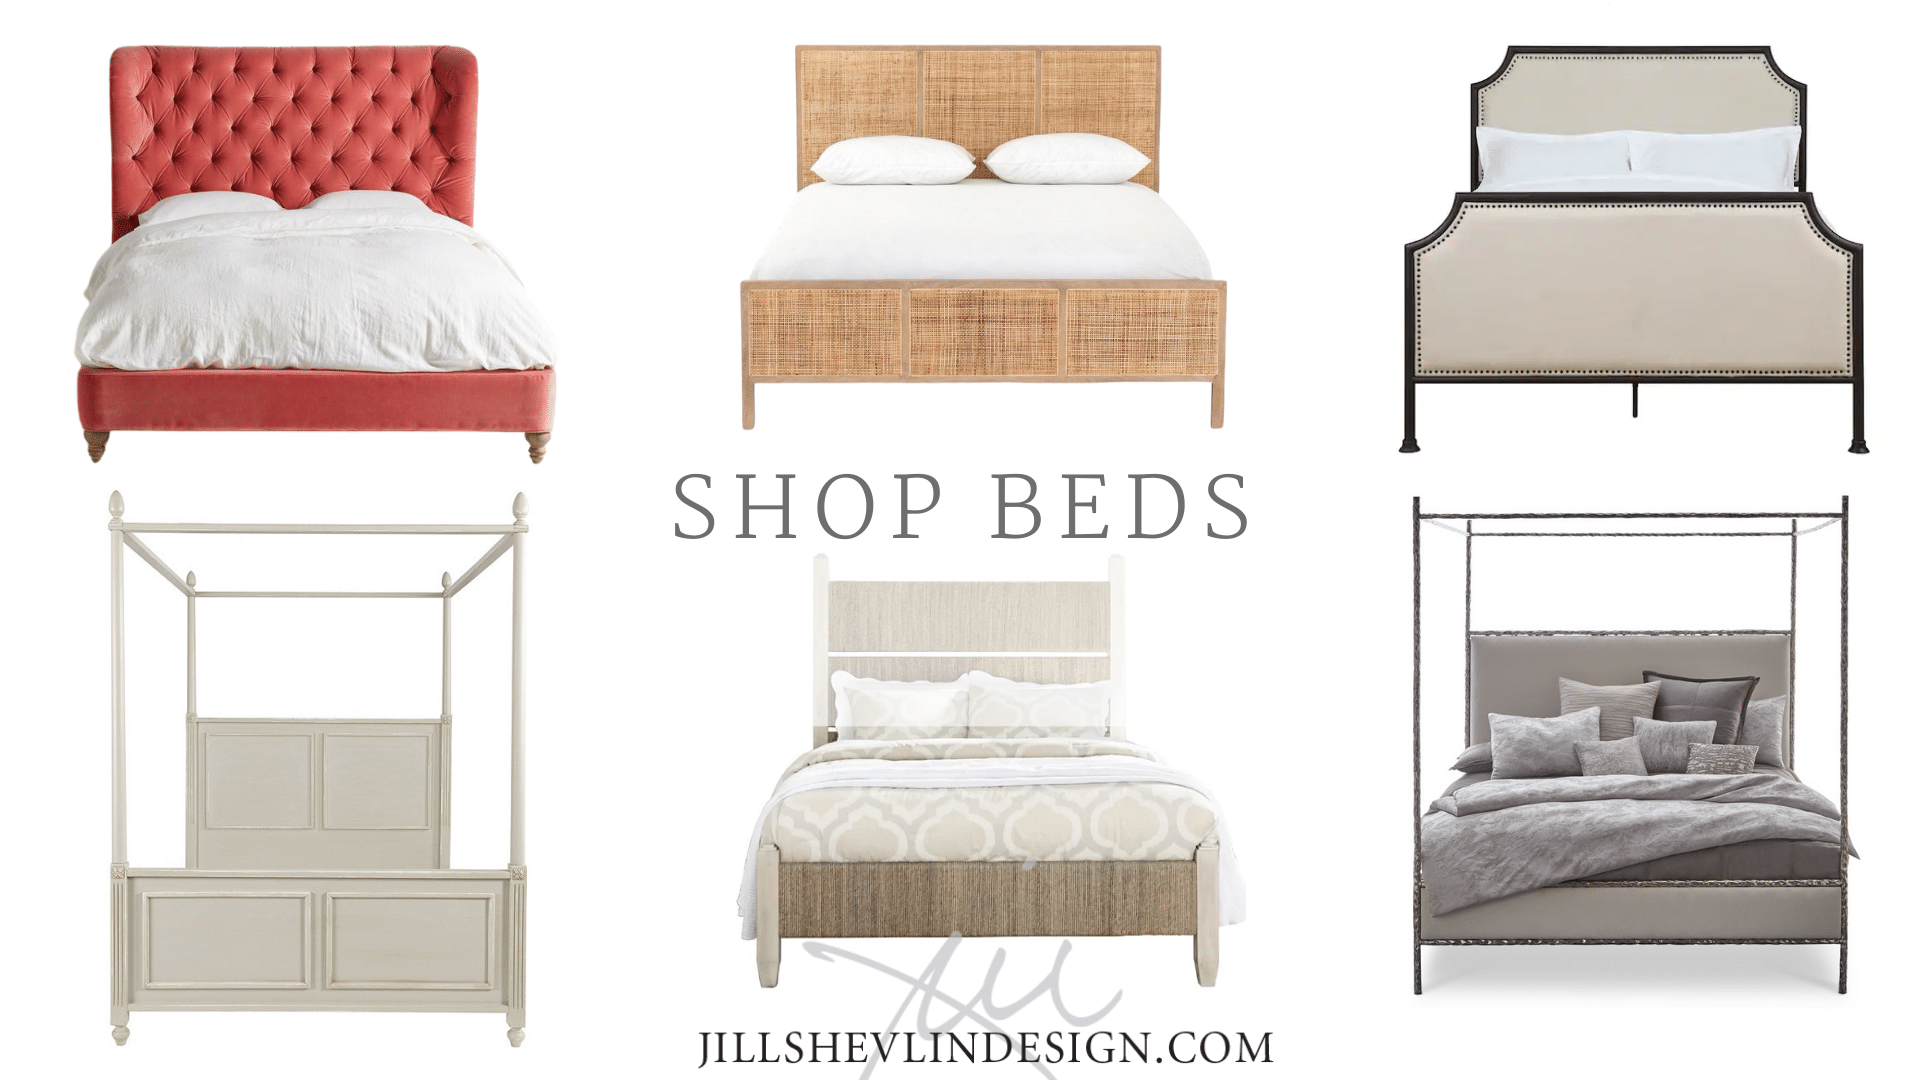 Unique Beds for any budget or bedroom style